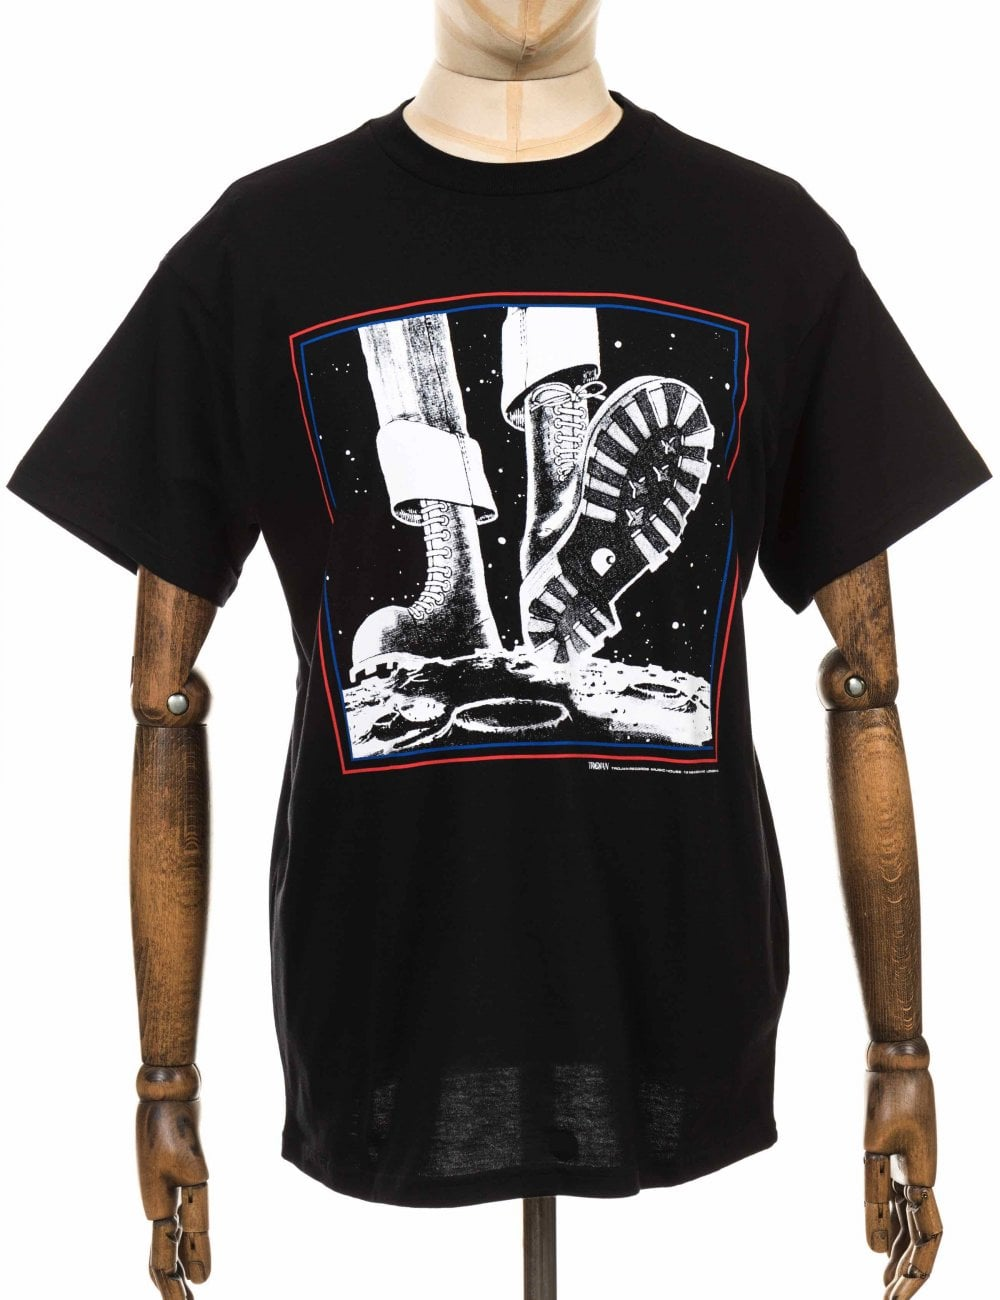 63396efe Carhartt WIP x Trojan Records Moonstomp Tee - Black - Clothing from ...